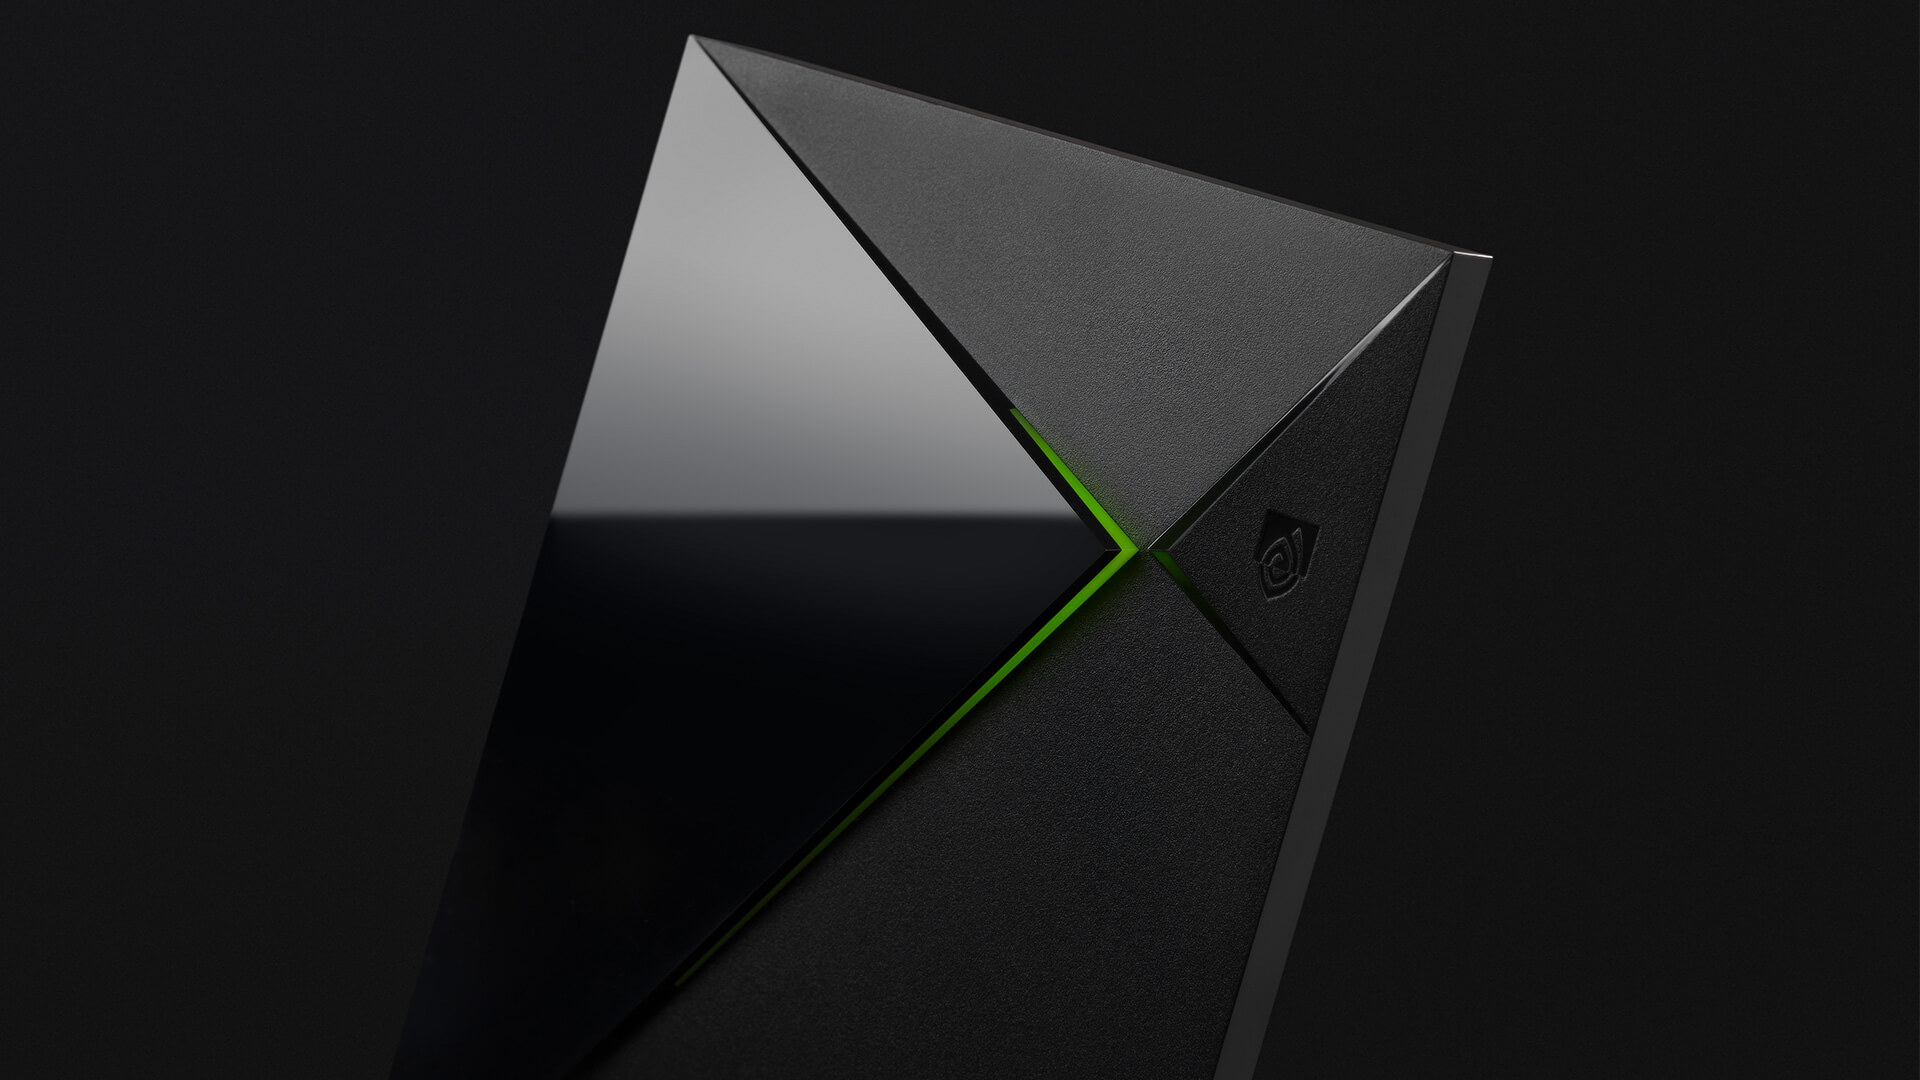 Nvidia might be working on a new Shield TV - TechSpot